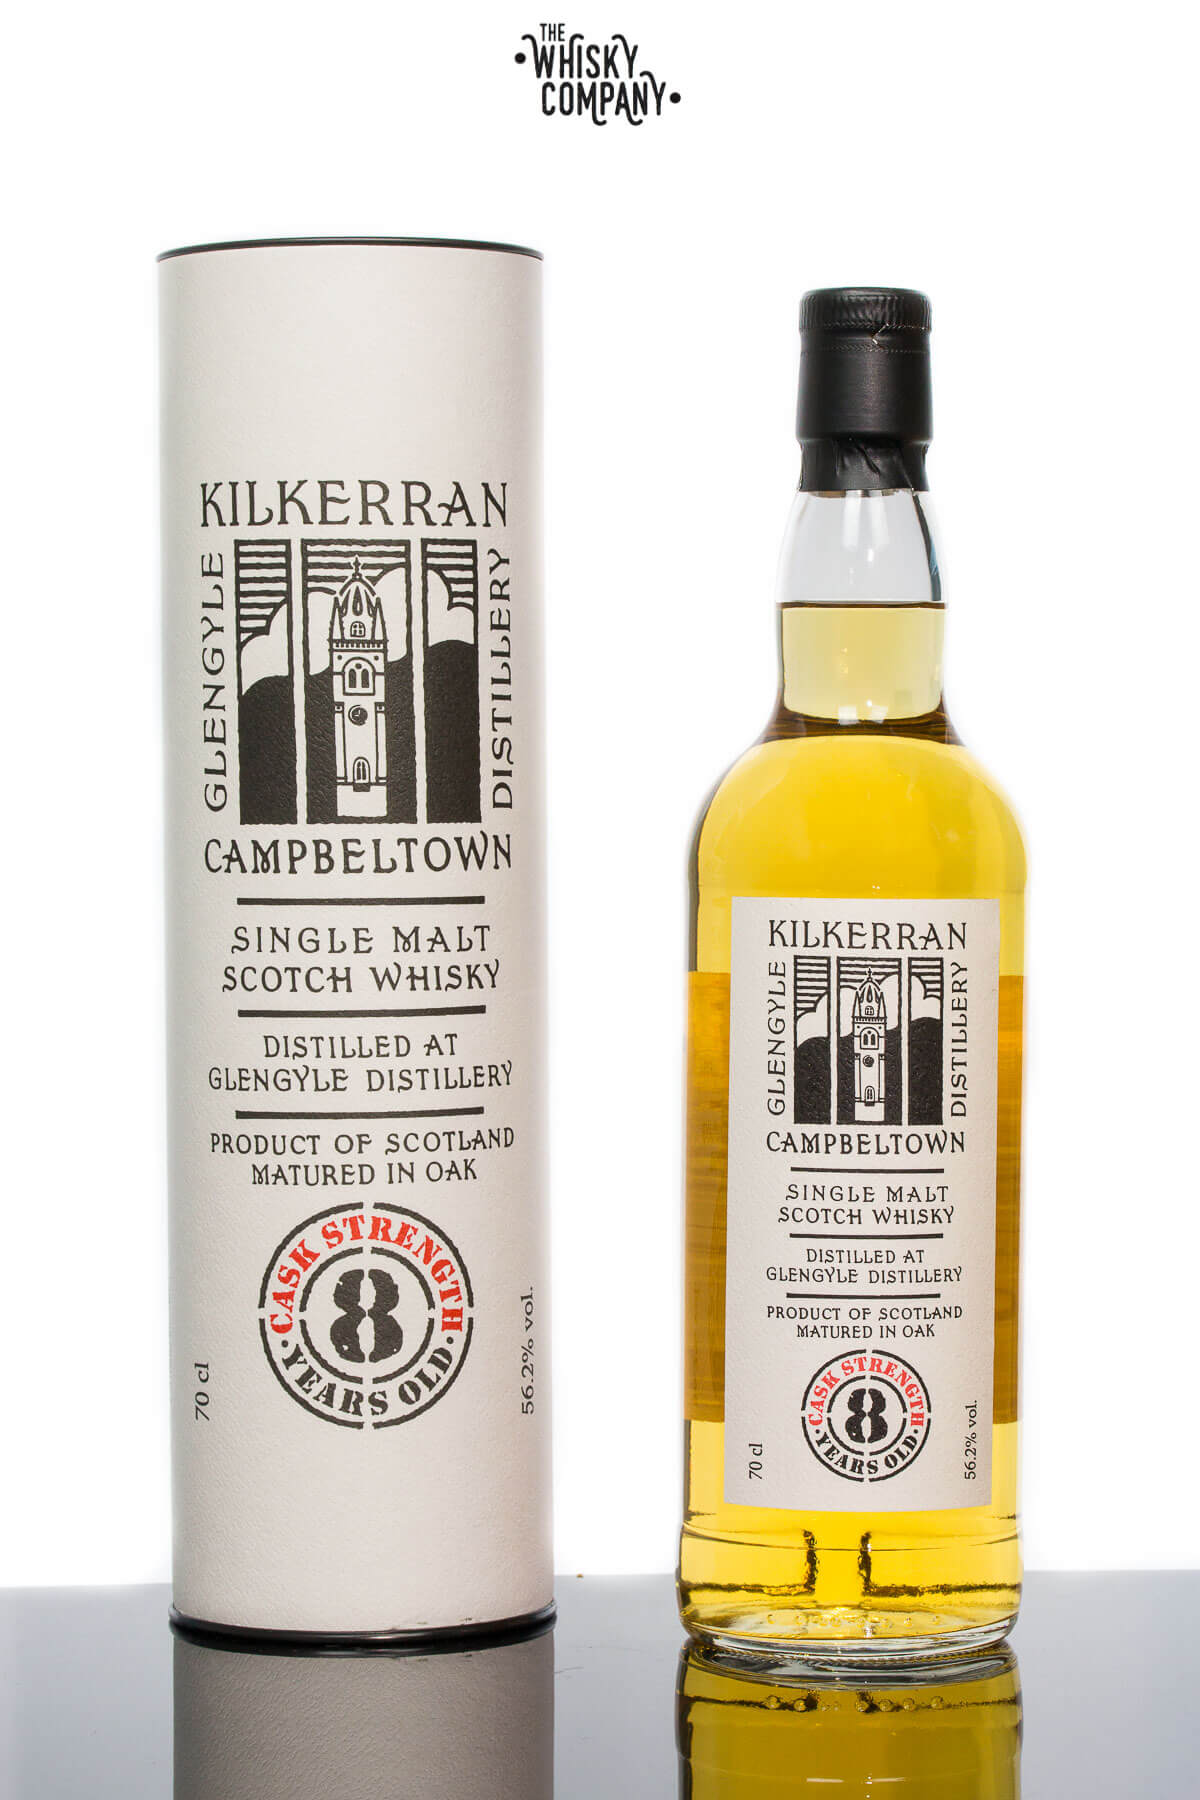 Kilkerran Aged 8 Years Cask Strength Campbeltown Single Malt Scotch Whisky